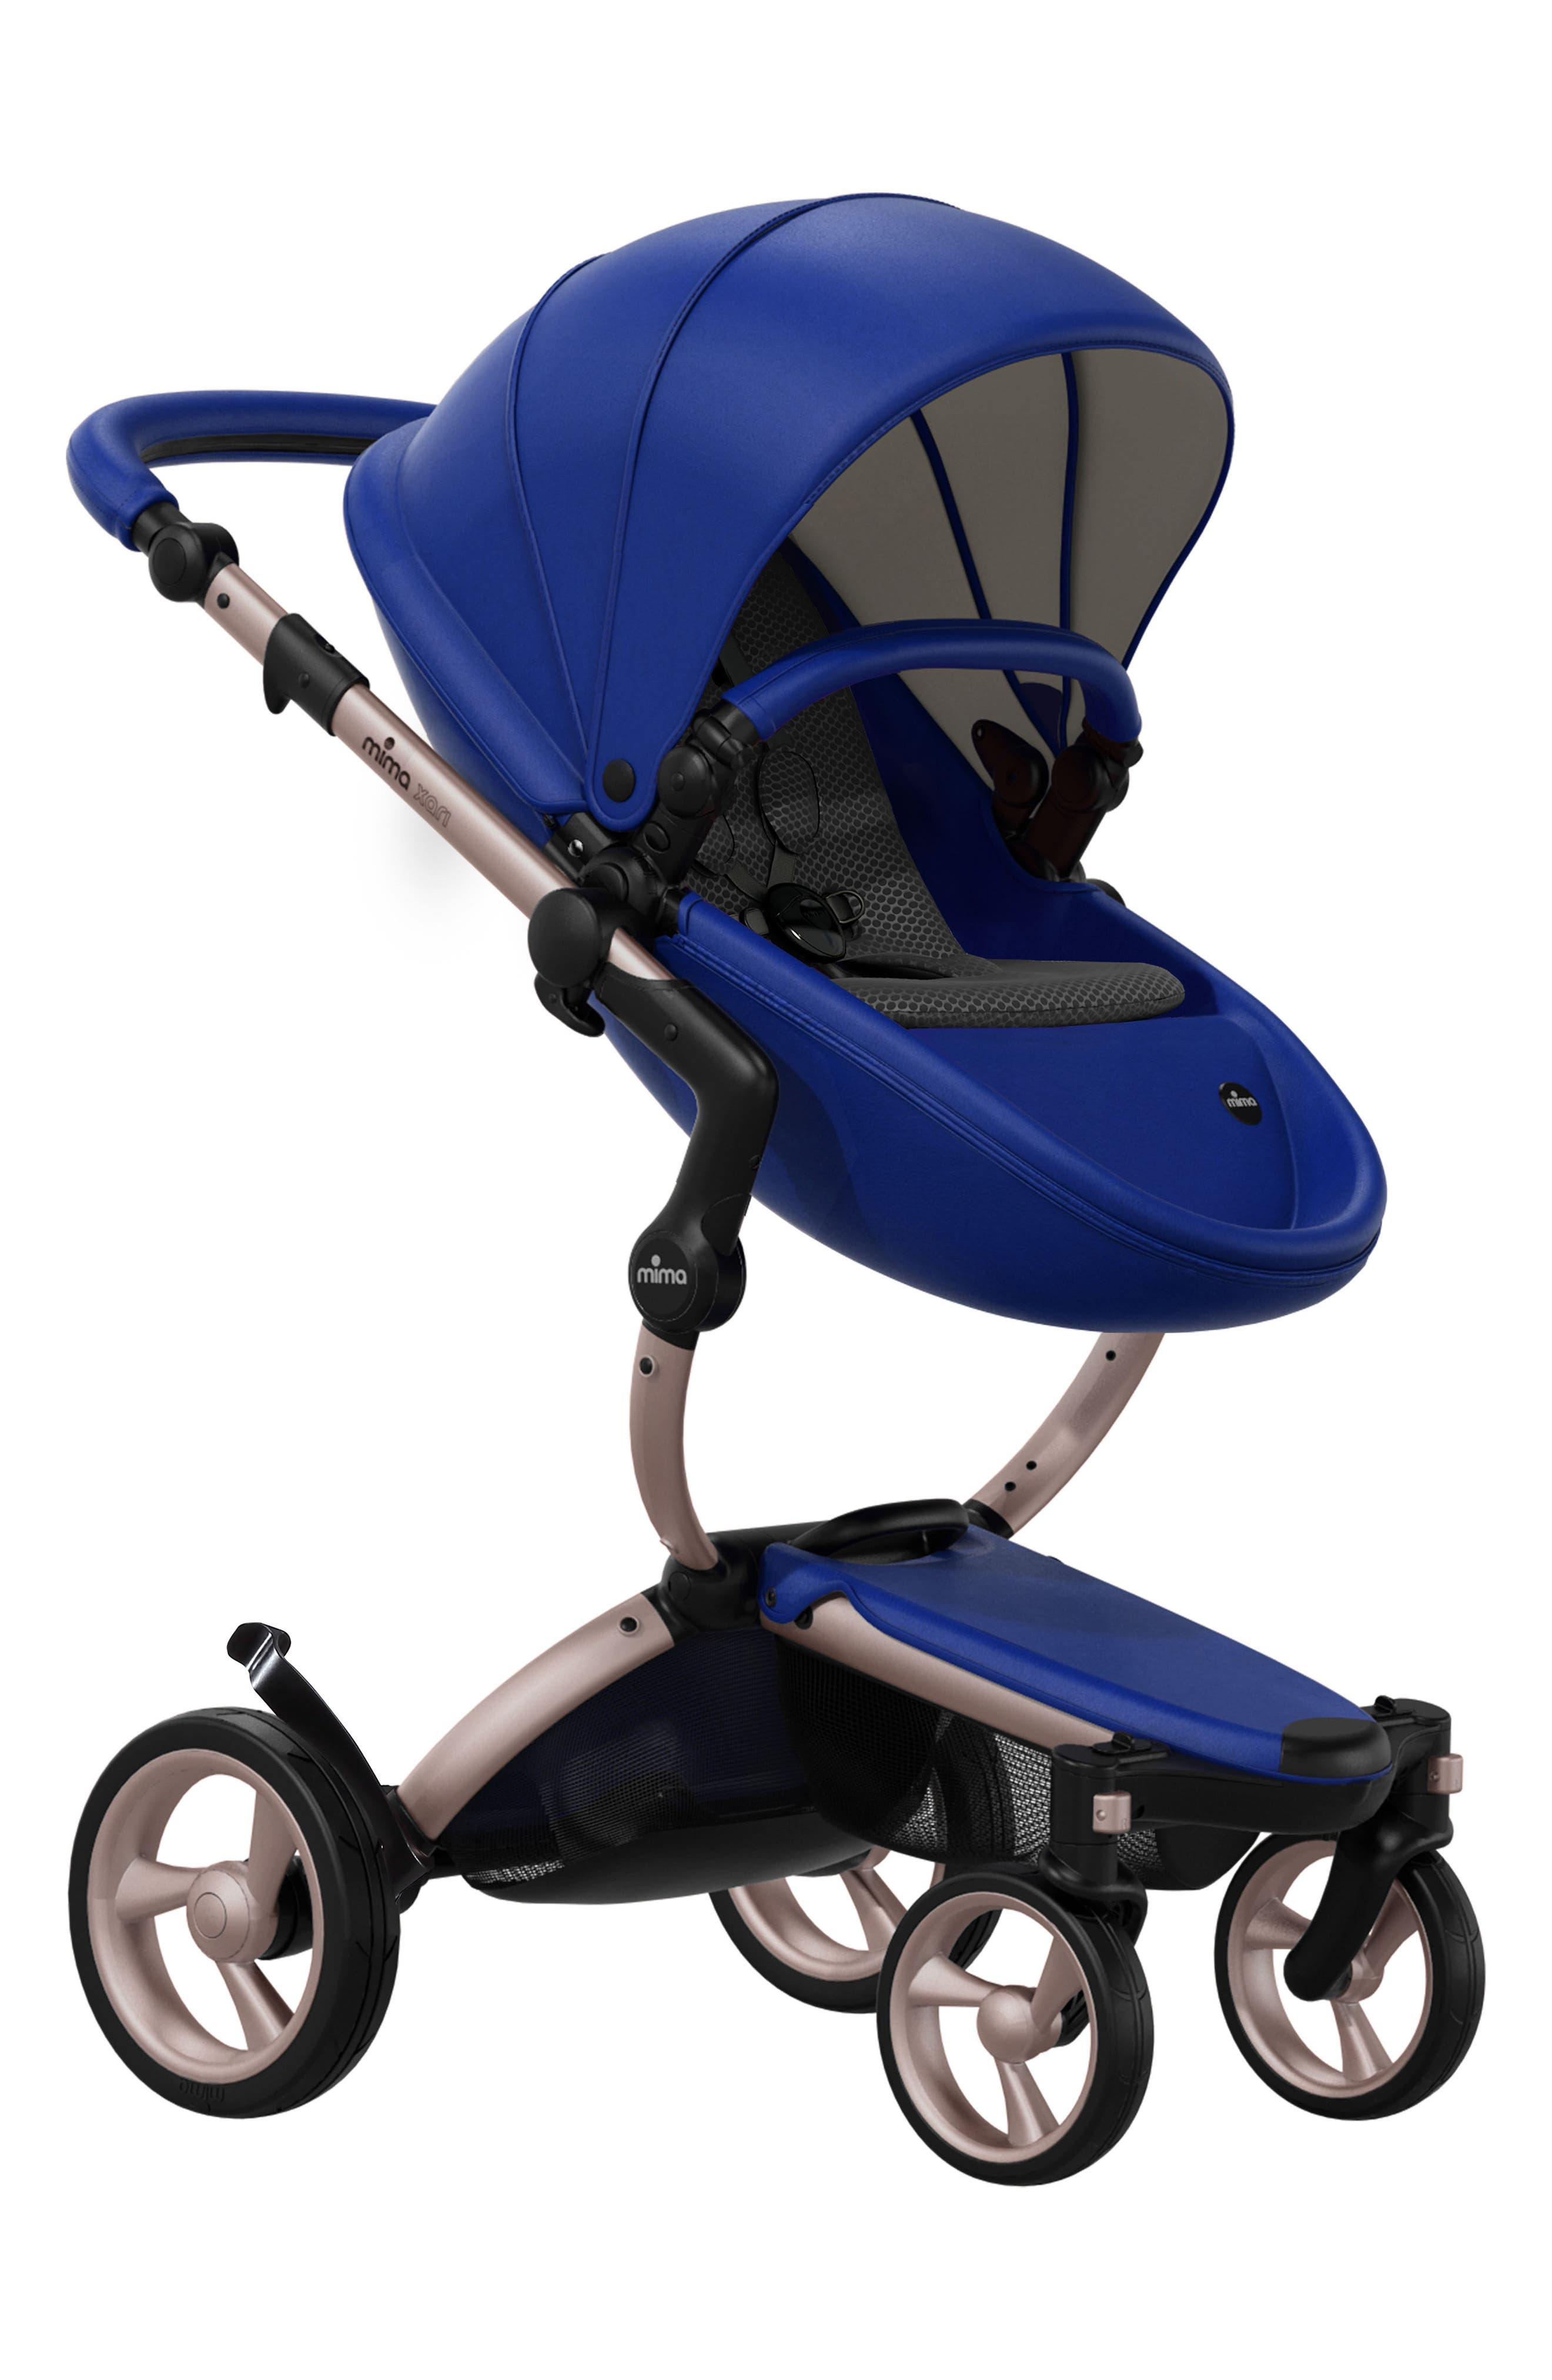 Xari Rose Gold Chassis Stroller with Reversible Reclining Seat & Carrycot,                         Main,                         color, Royal Blue/ Black